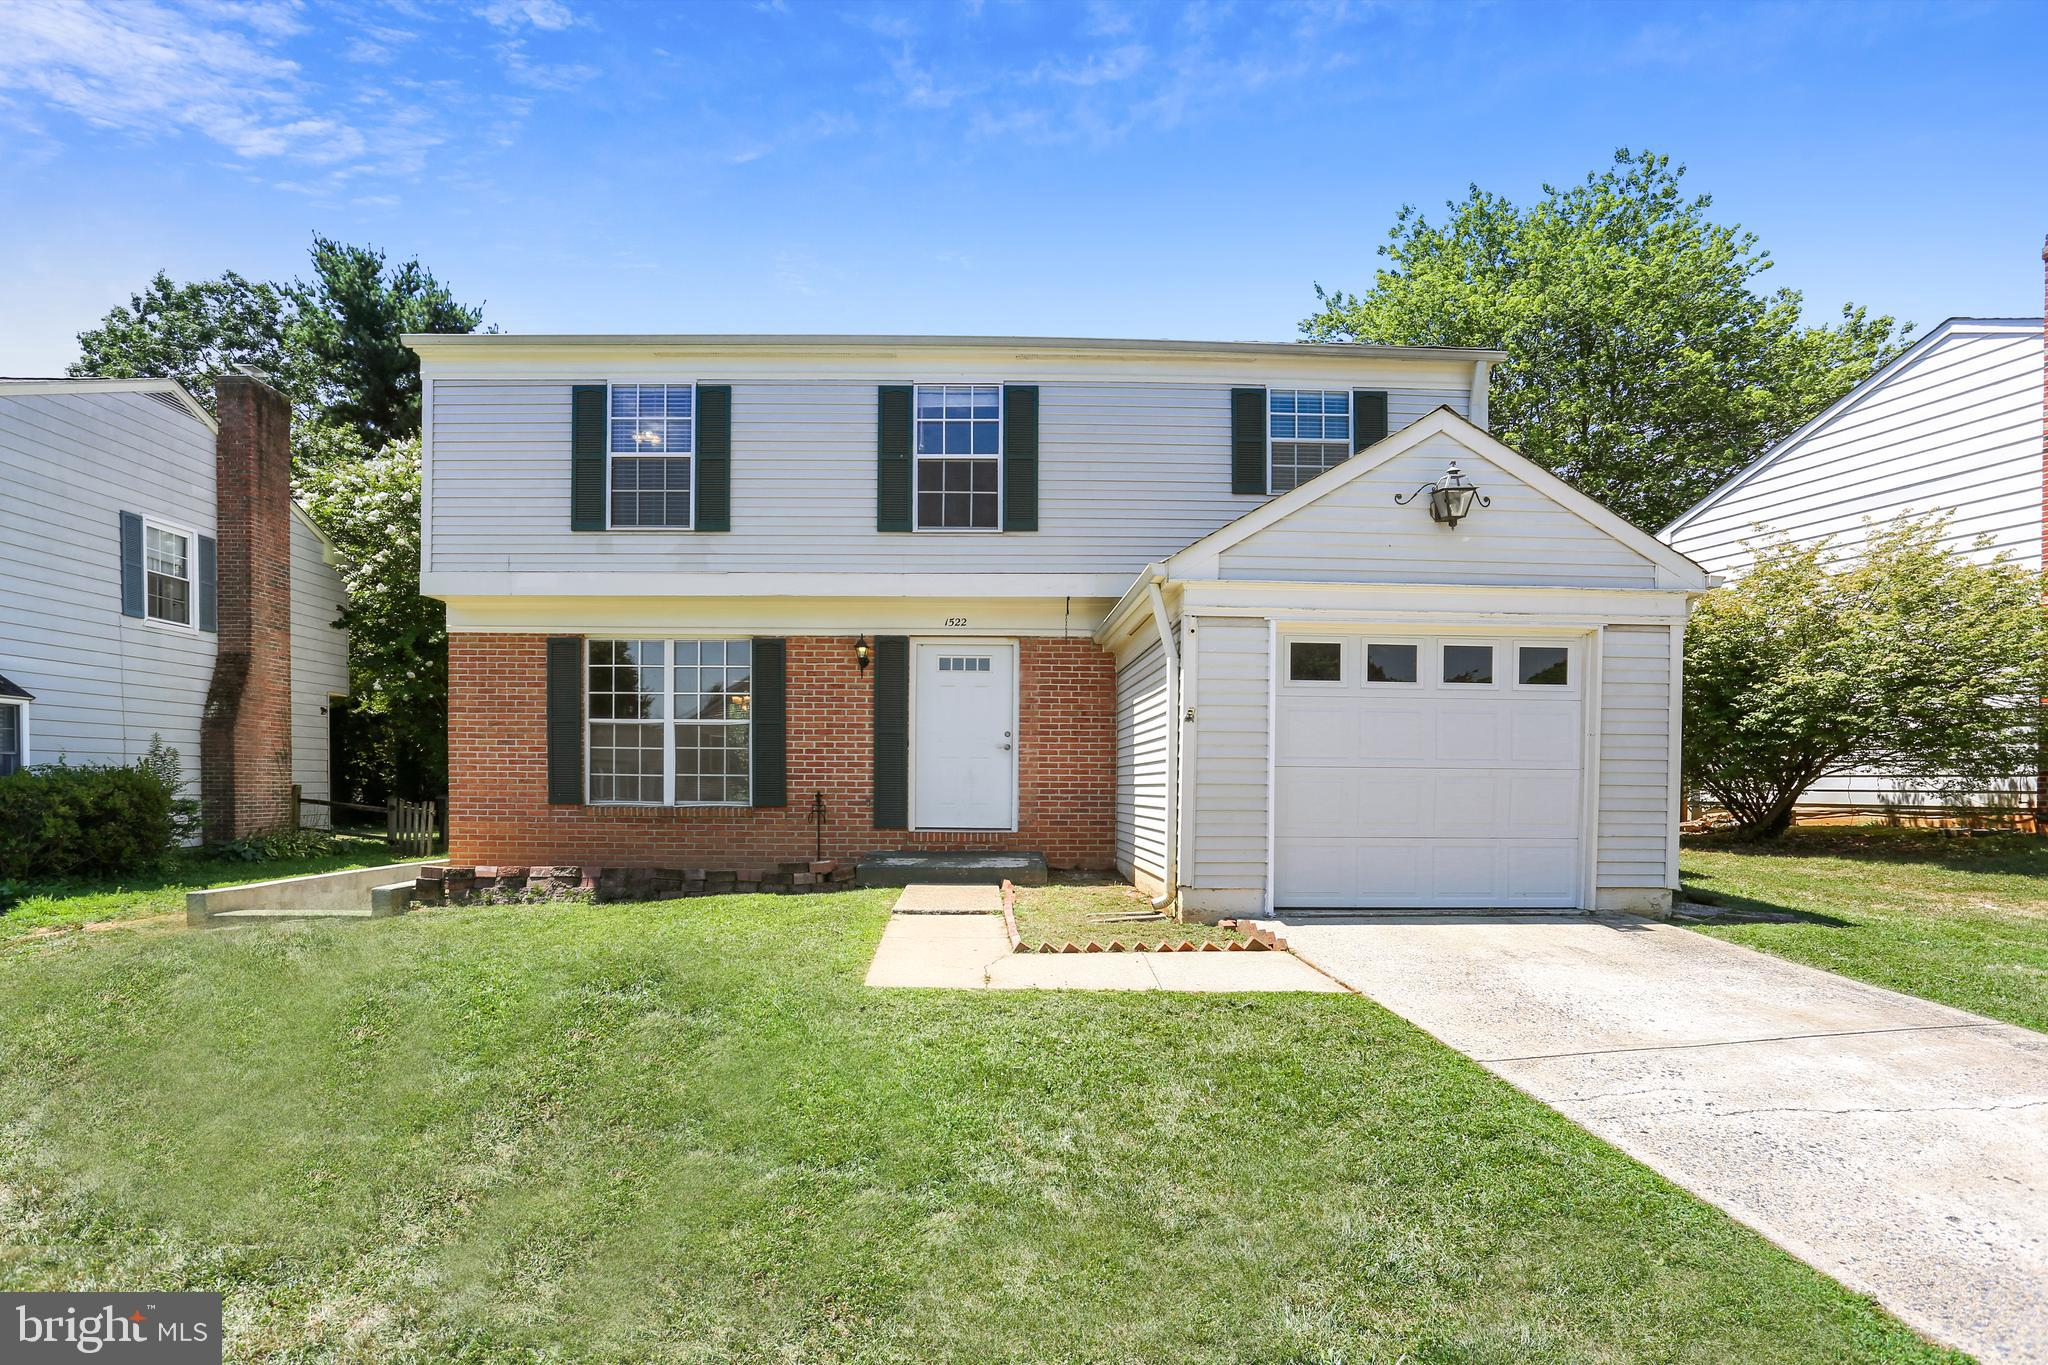 Welcome to this Bright & Spacious 5BD & 3.5BA single-family home located in the wonderful community